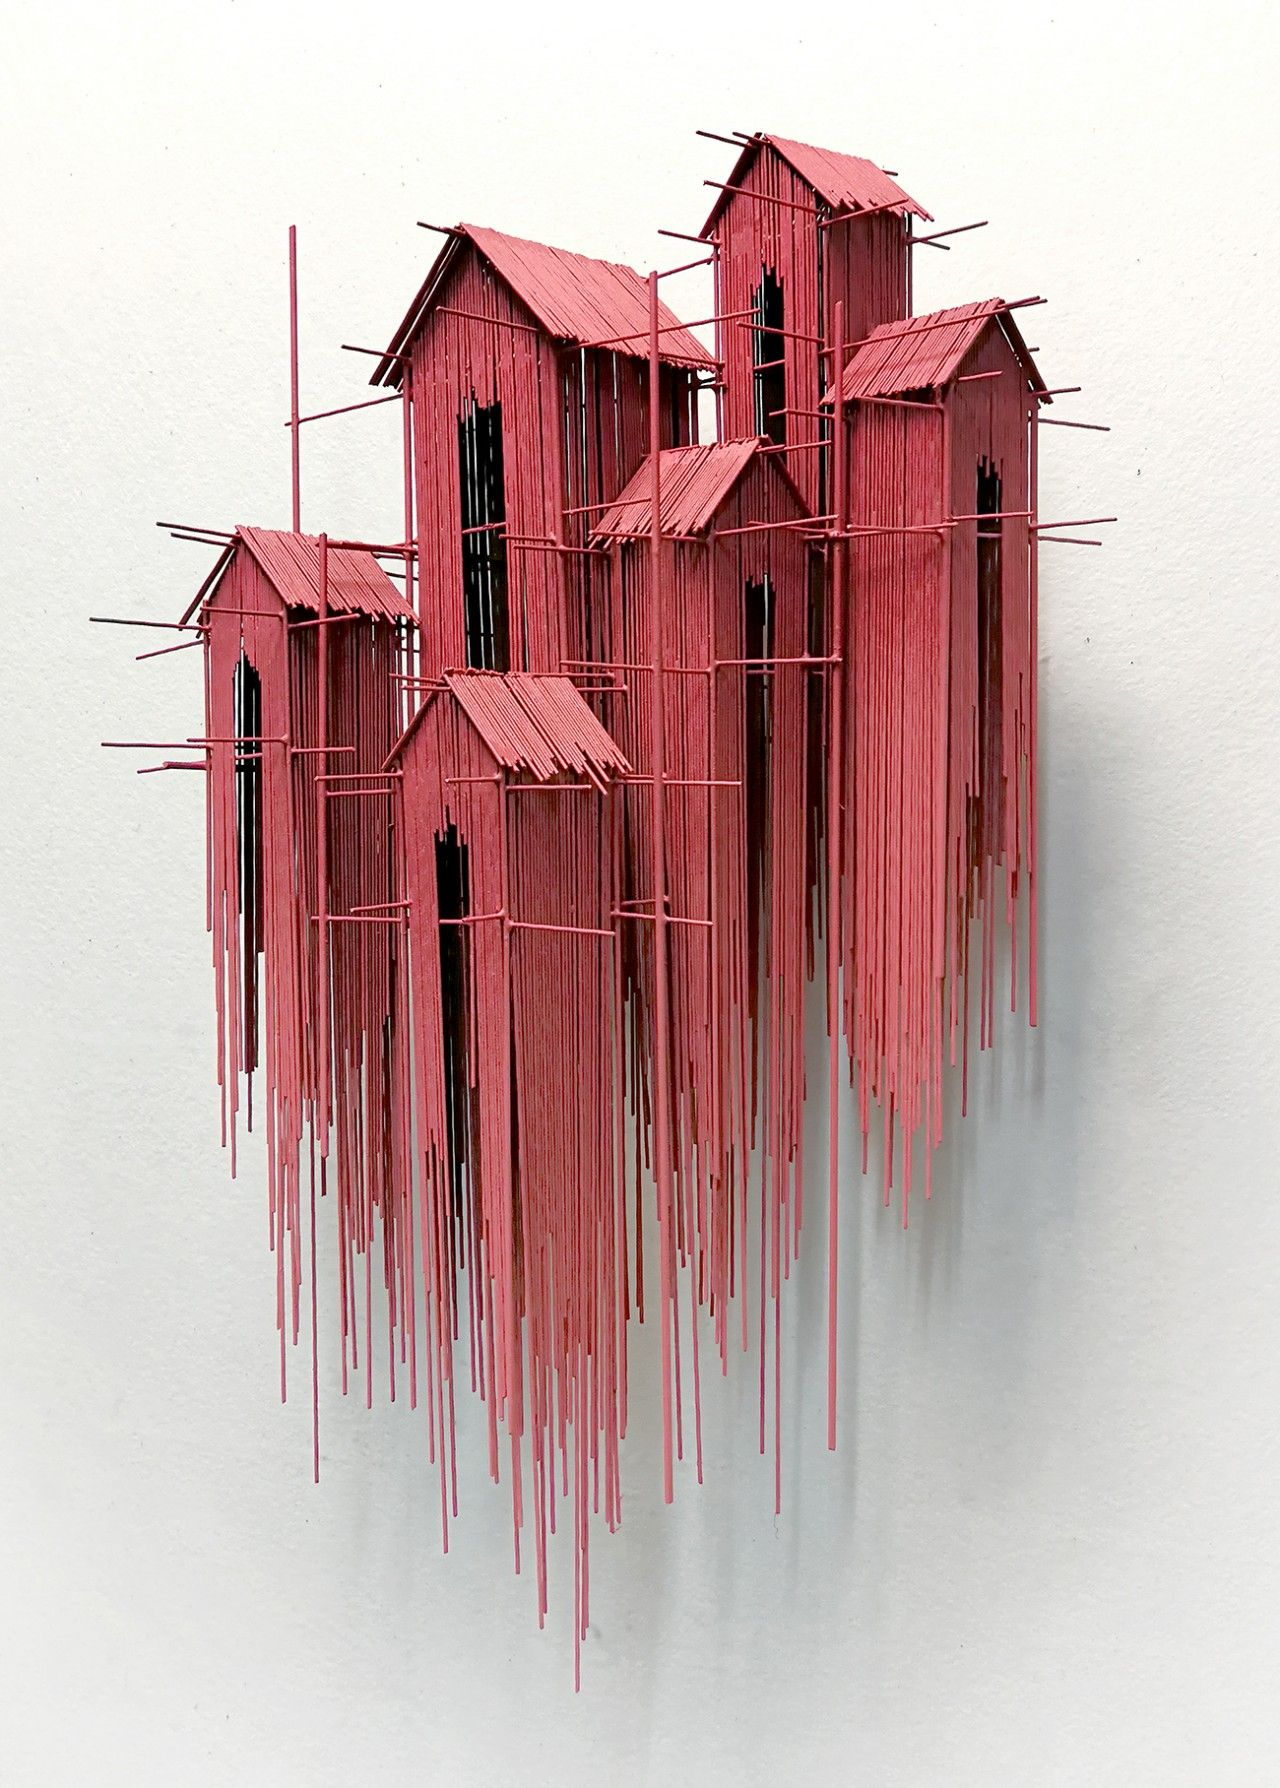 New Architectural Sculptures by David Moreno Appea